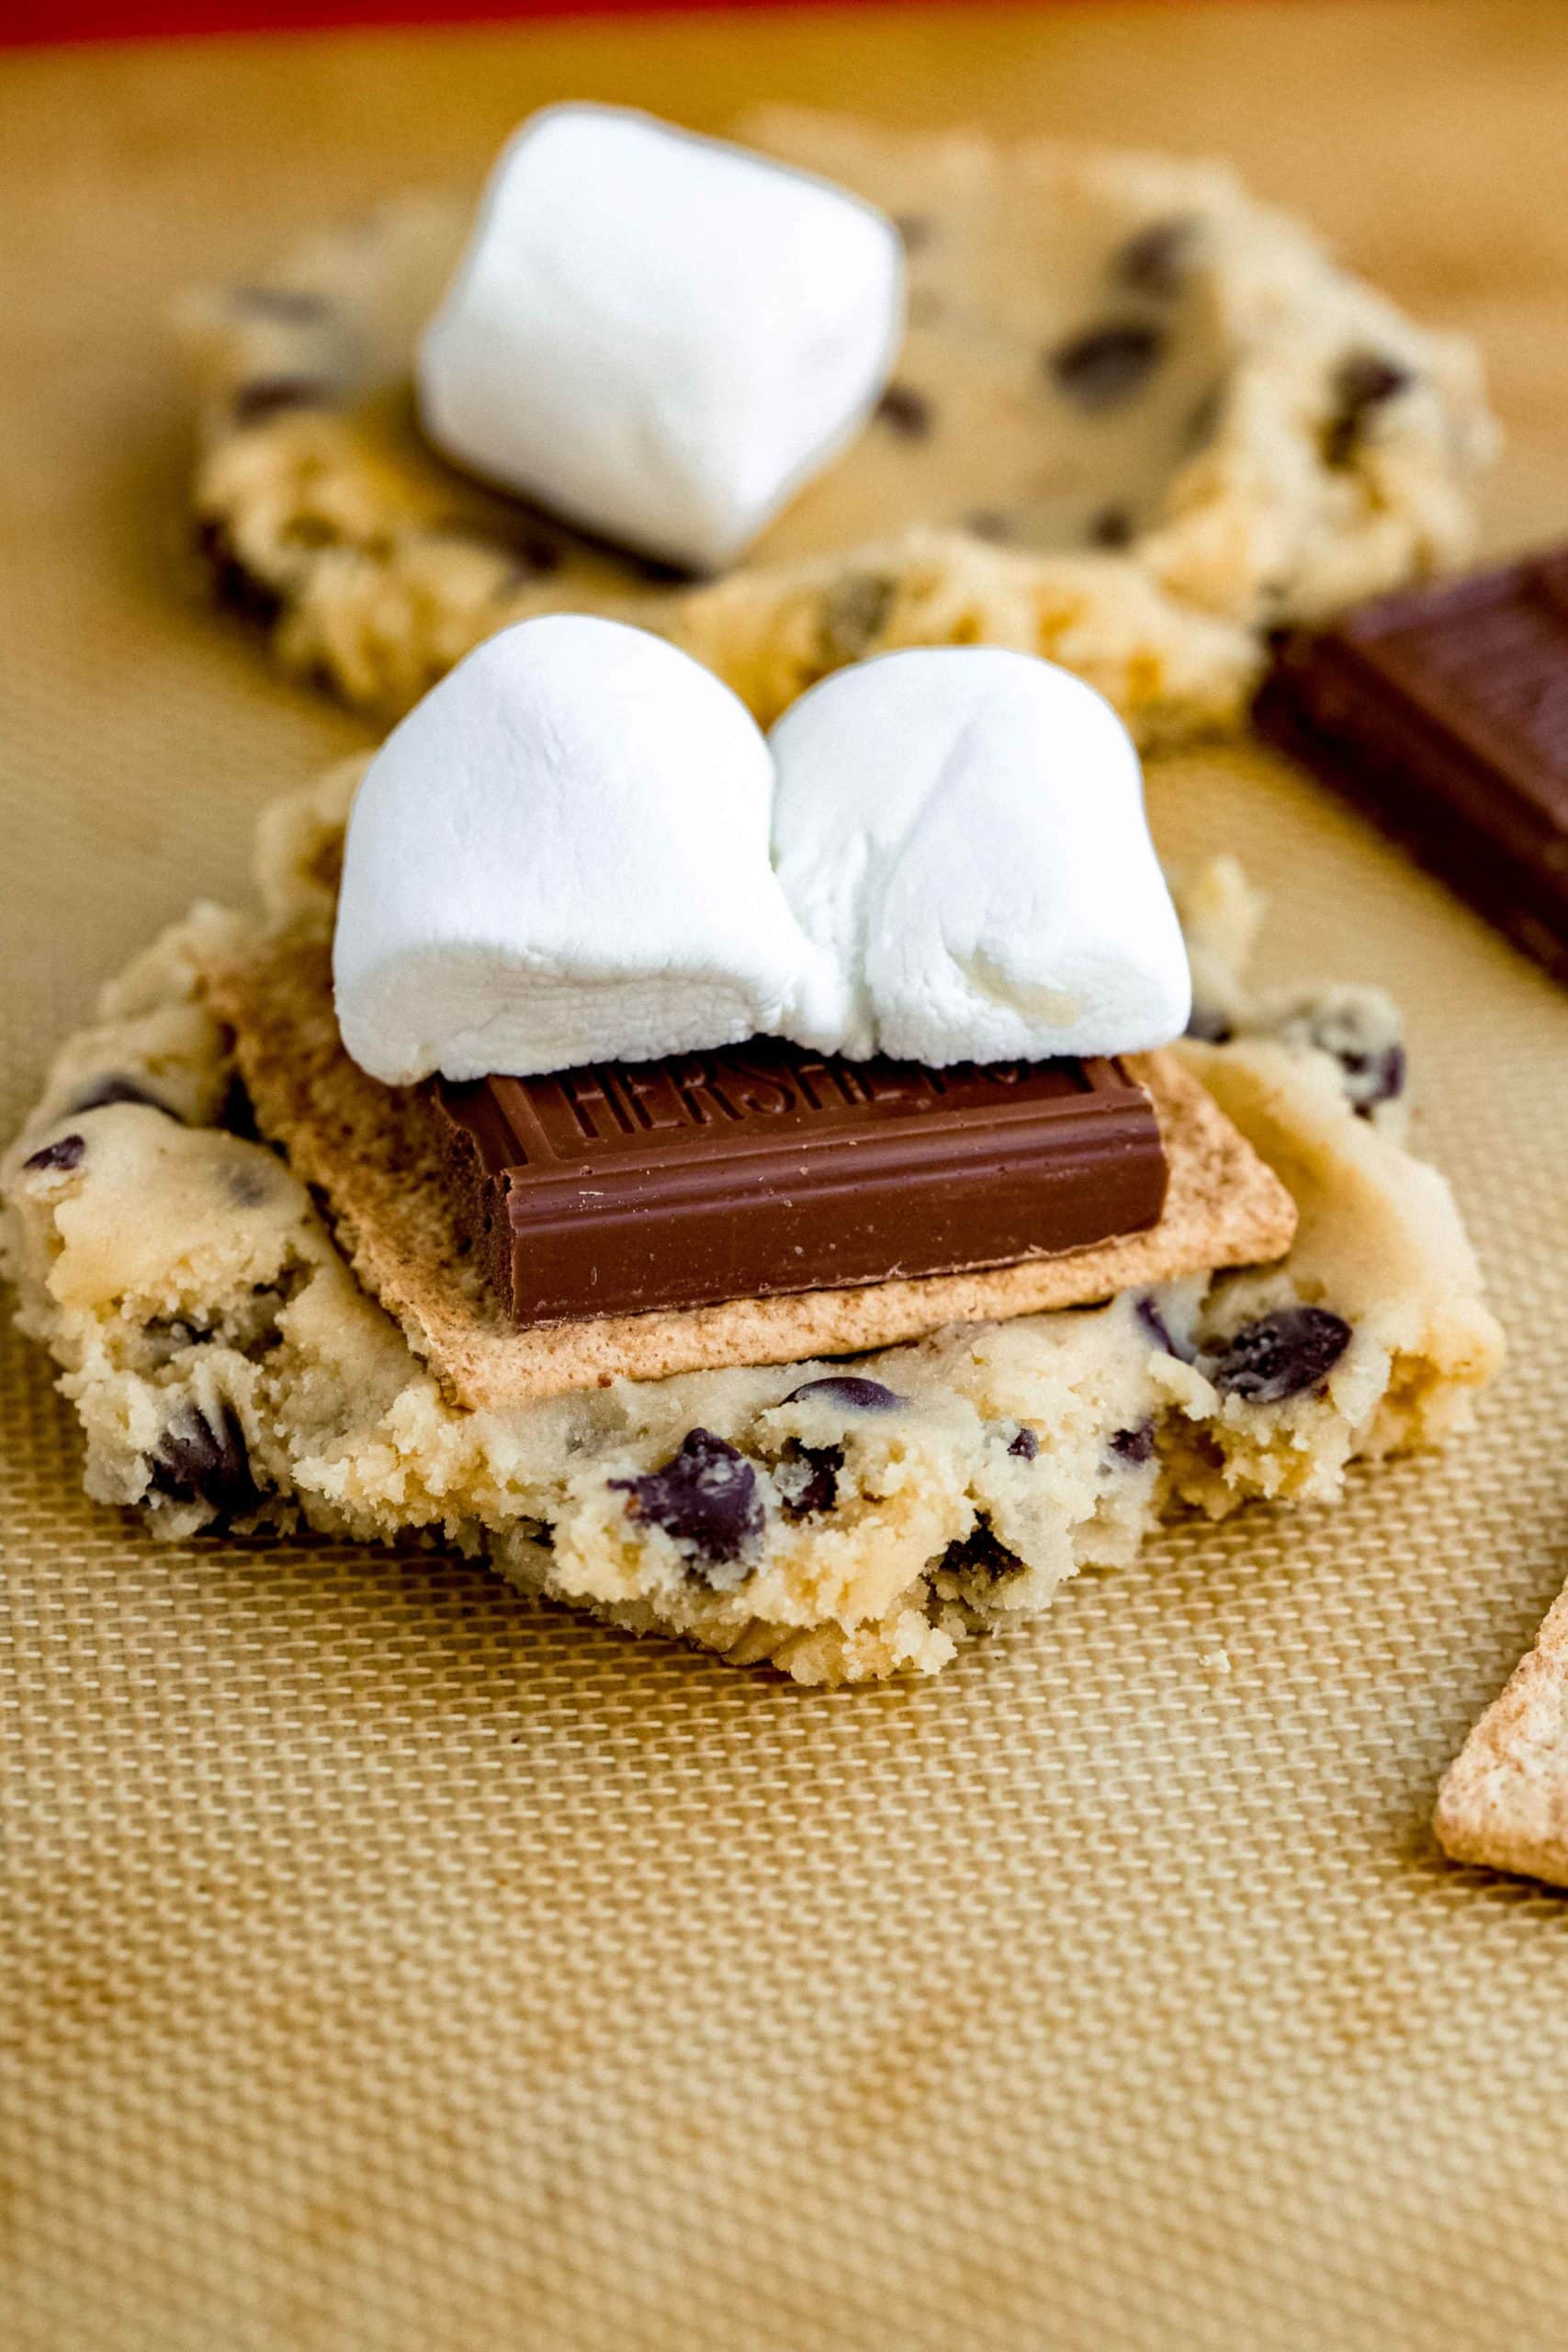 A baked chocolate chip cookie with a graham cracker, chocolate bar, and marshmallow on top. Another cookie and marshmallow are in the background.